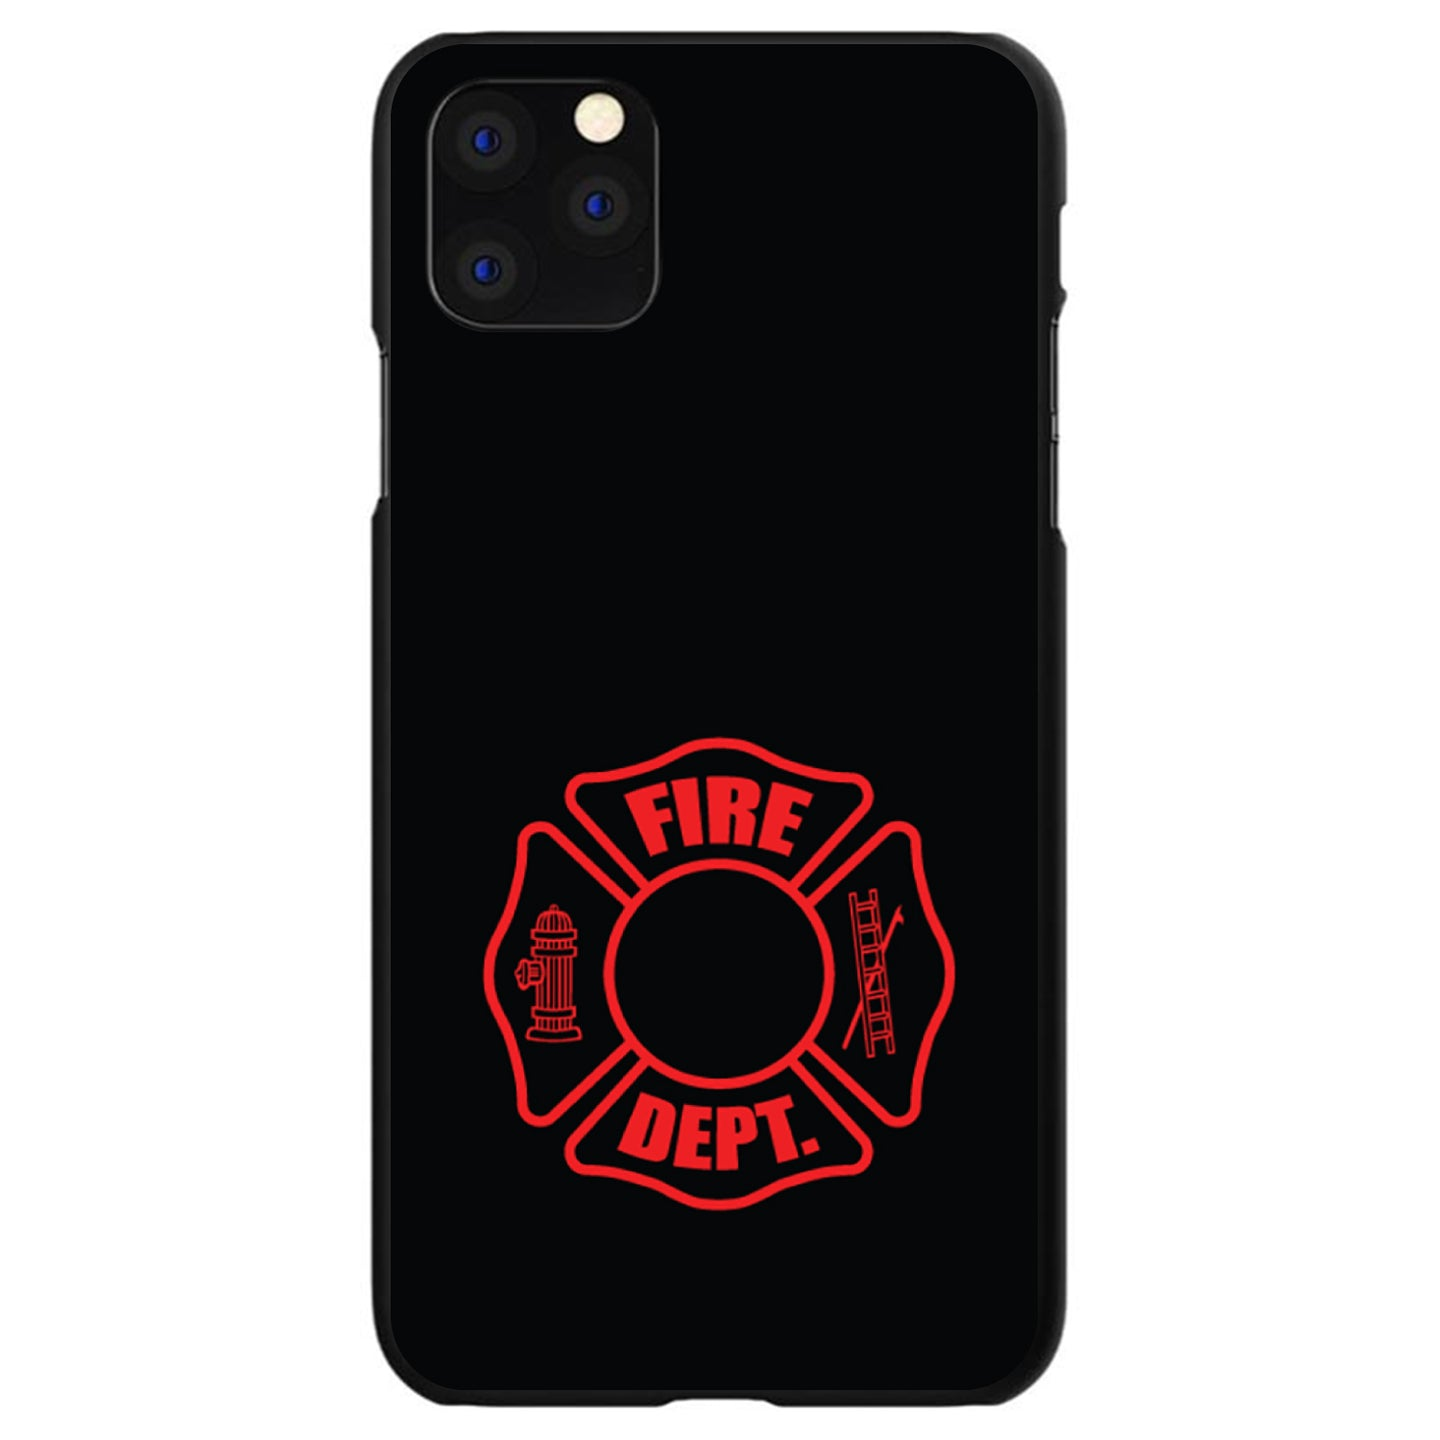 DistinctInk® Hard Plastic Snap-On Case for Apple iPhone - Red Fire Department